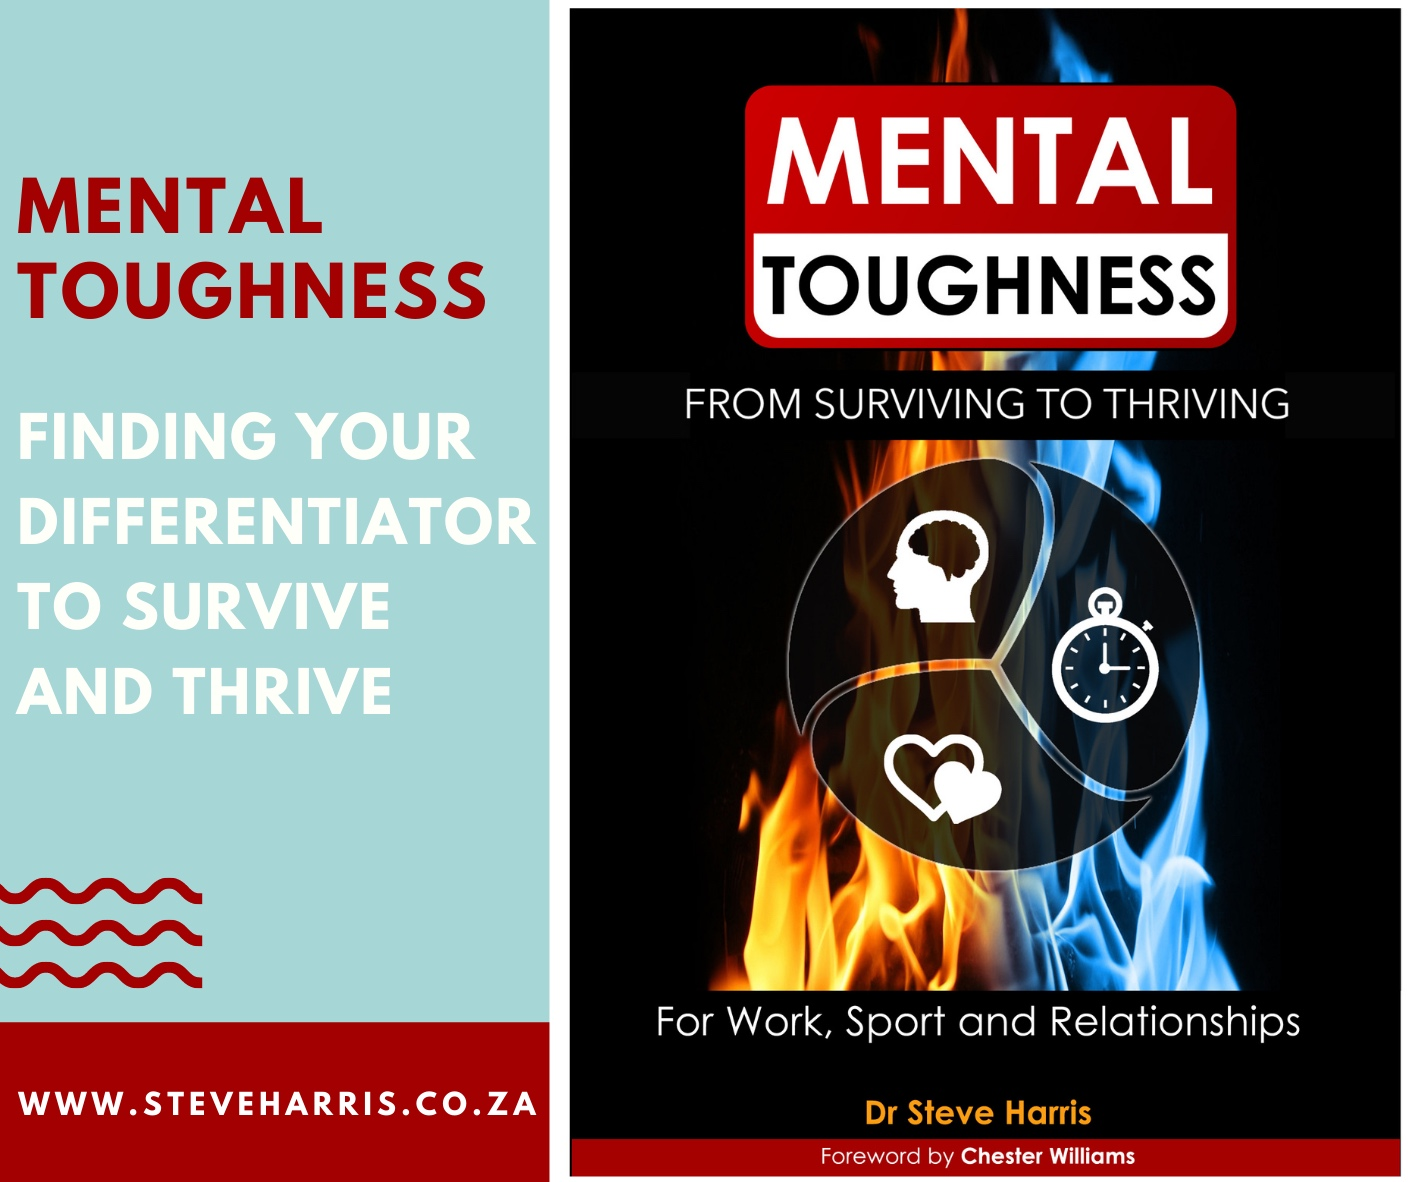 Mental Toughness Finding Your Differentiator To Survive And Thrive